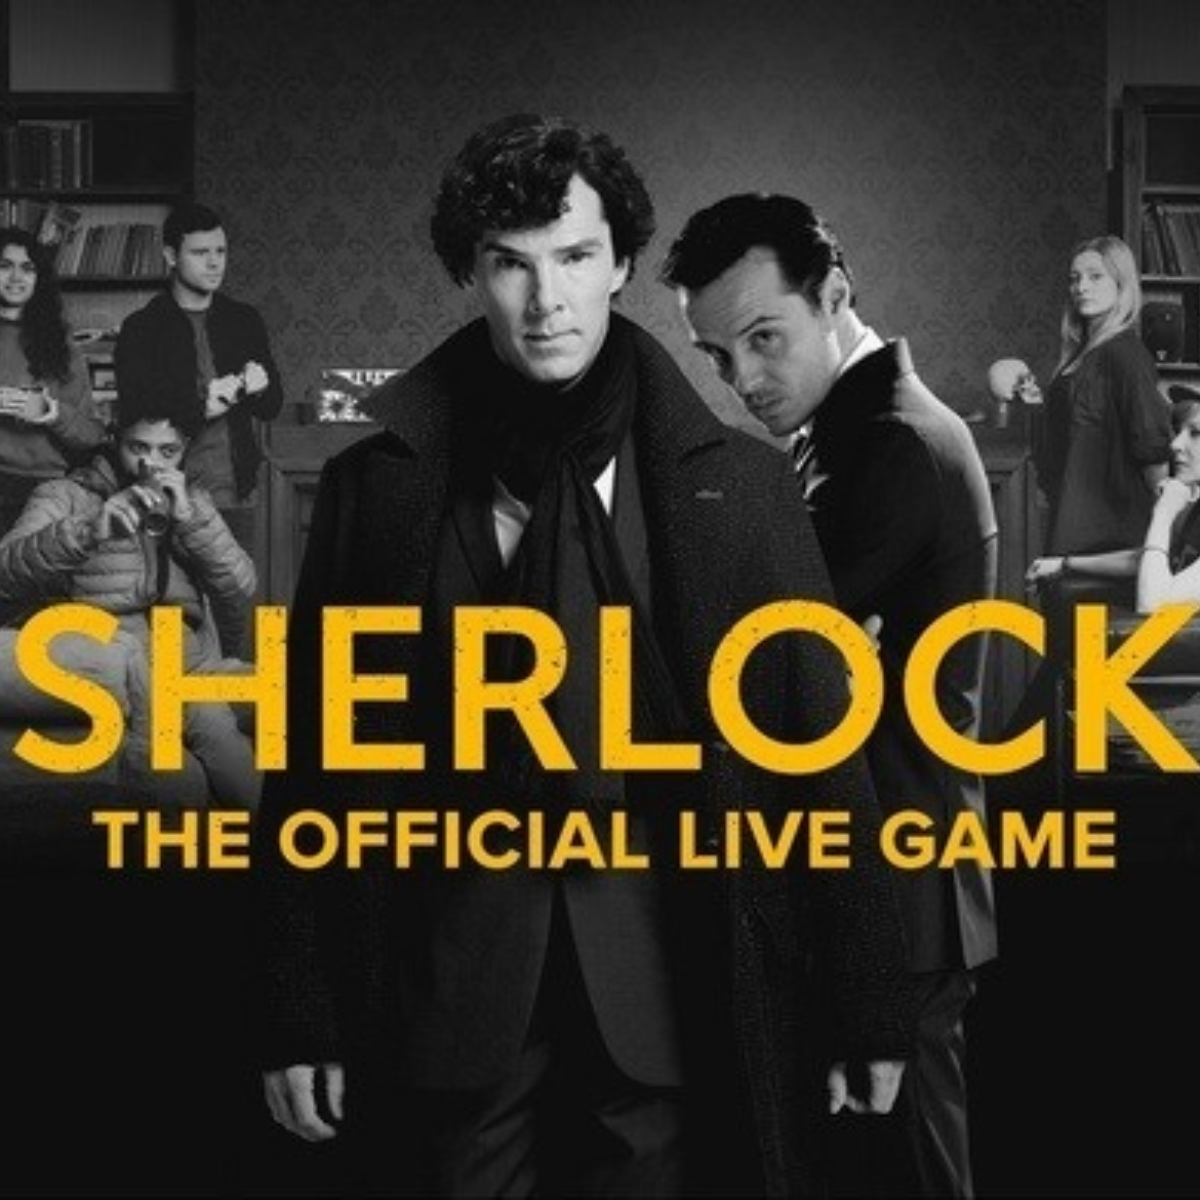 Sherlock: The Official Live Game Images